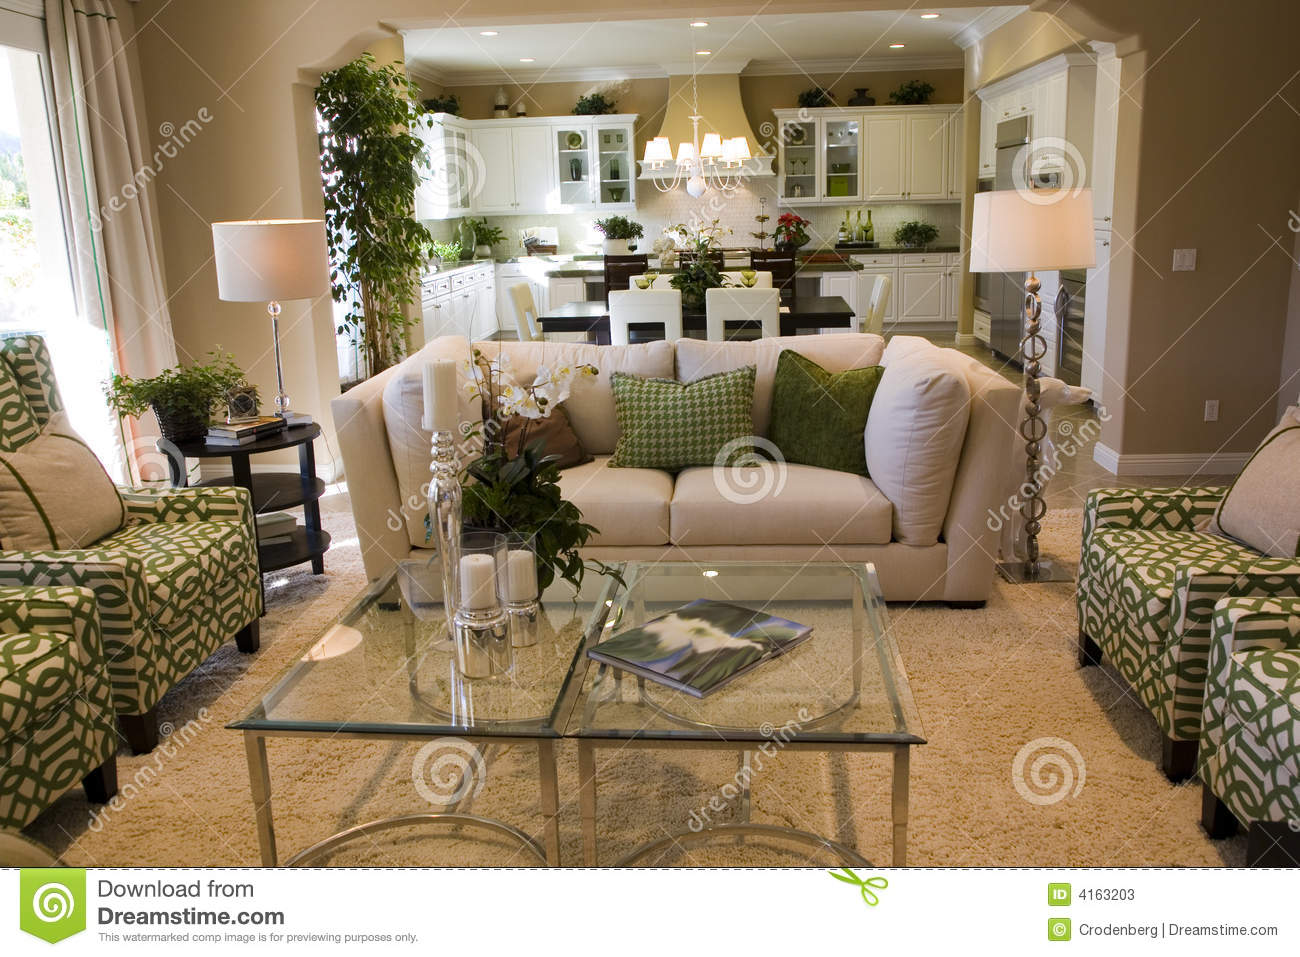 More similar stock images of ` Luury home living room `